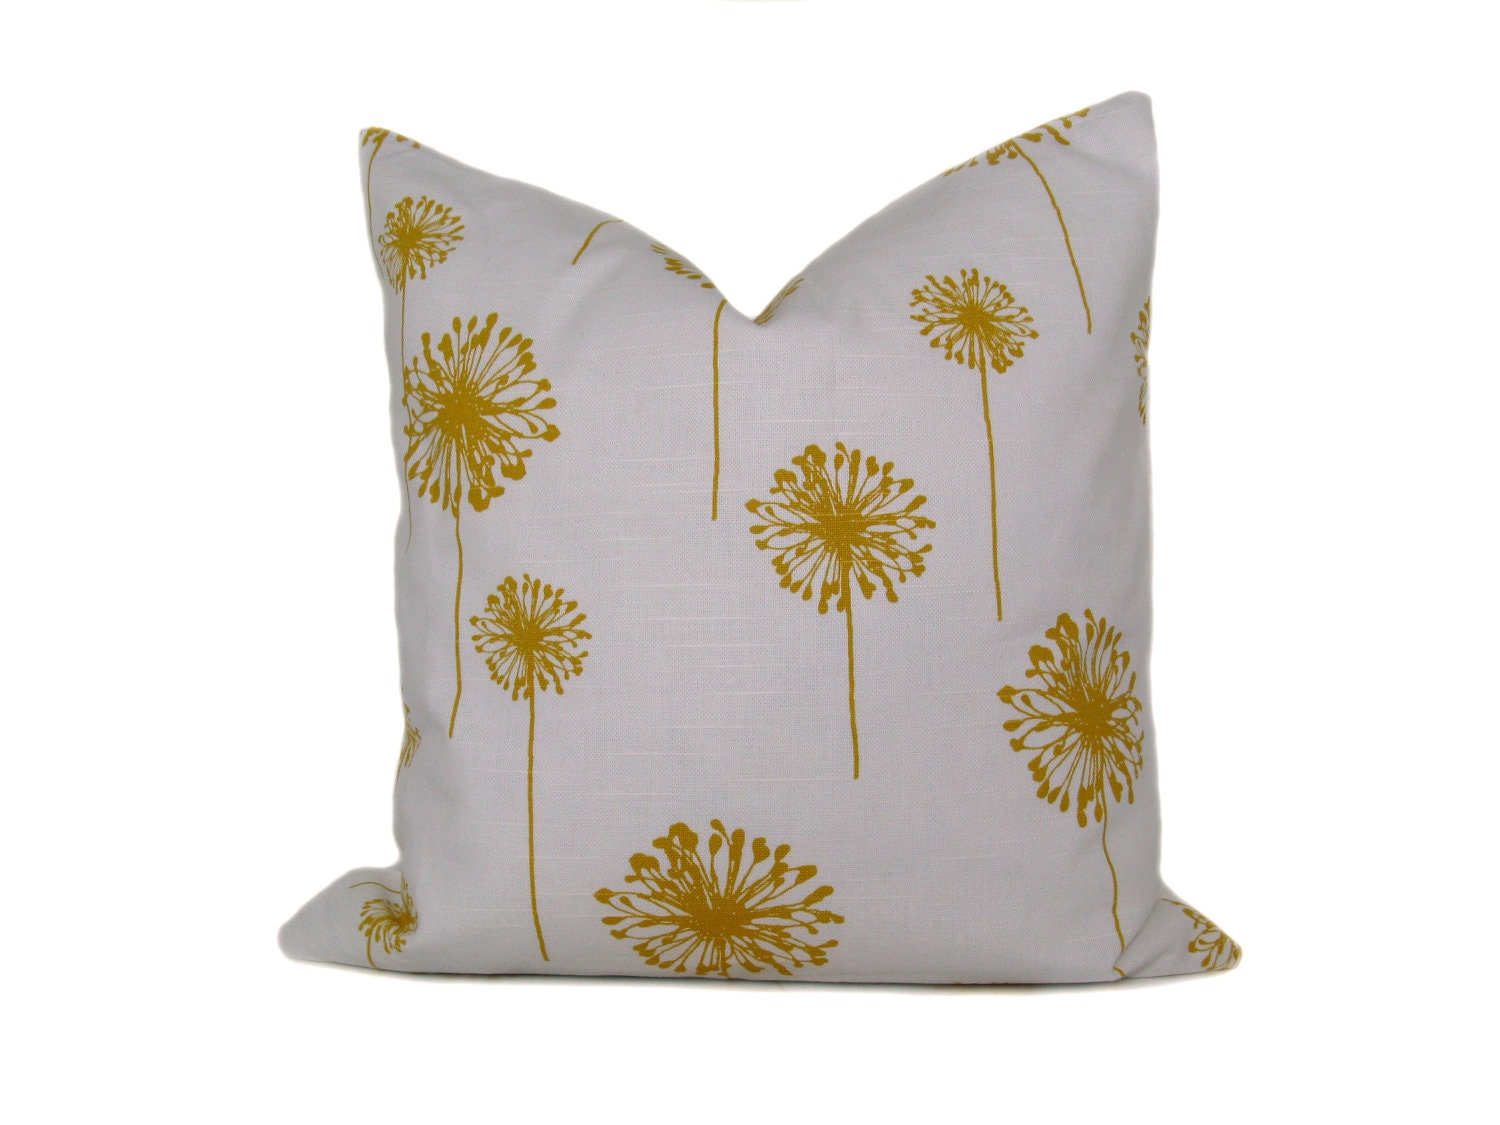 Pillow Yellow Pillow Decorative Throw Pillow Covers 16x16